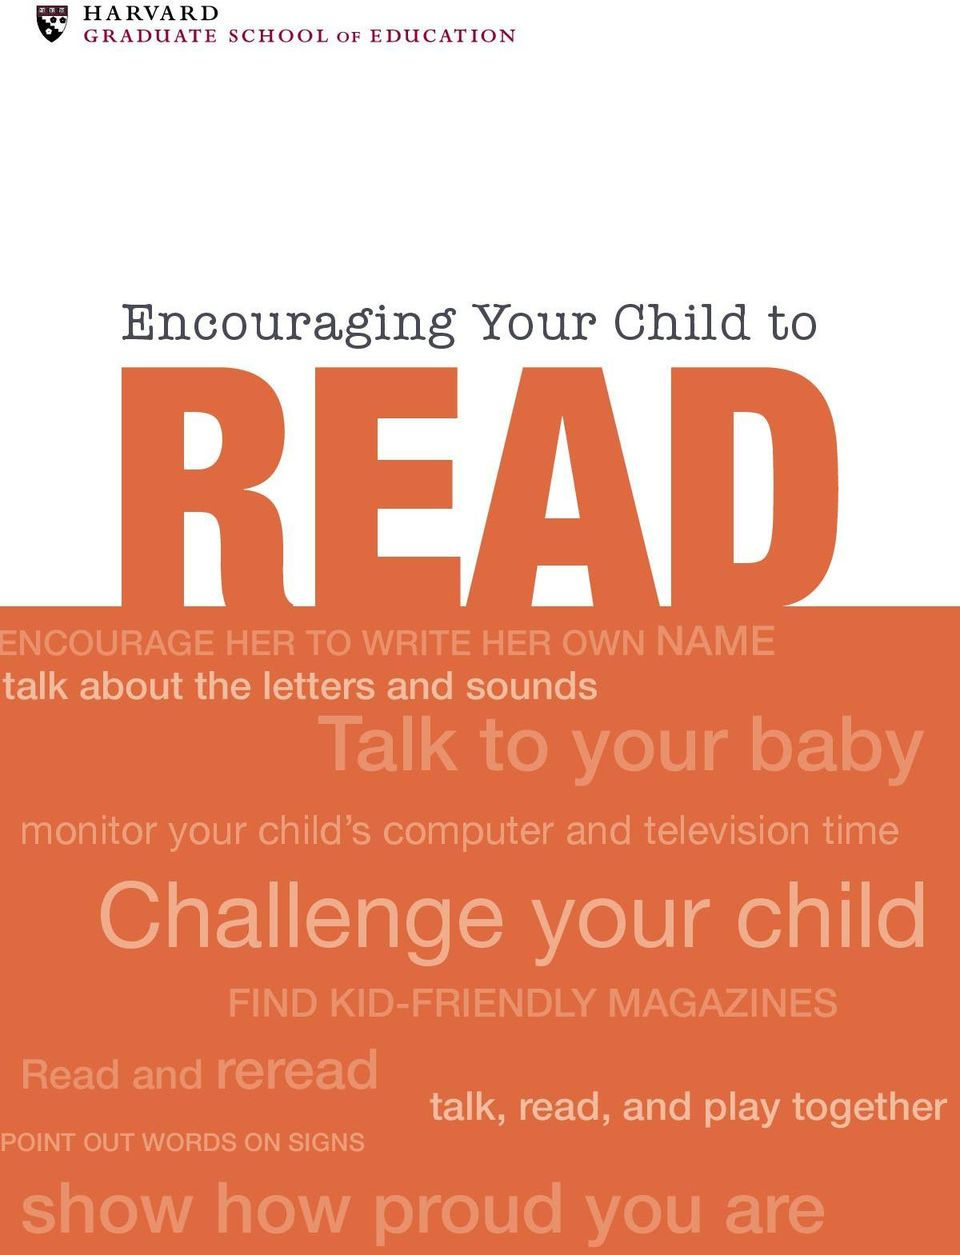 television time Challenge your child find kid-friendly magazines Read and